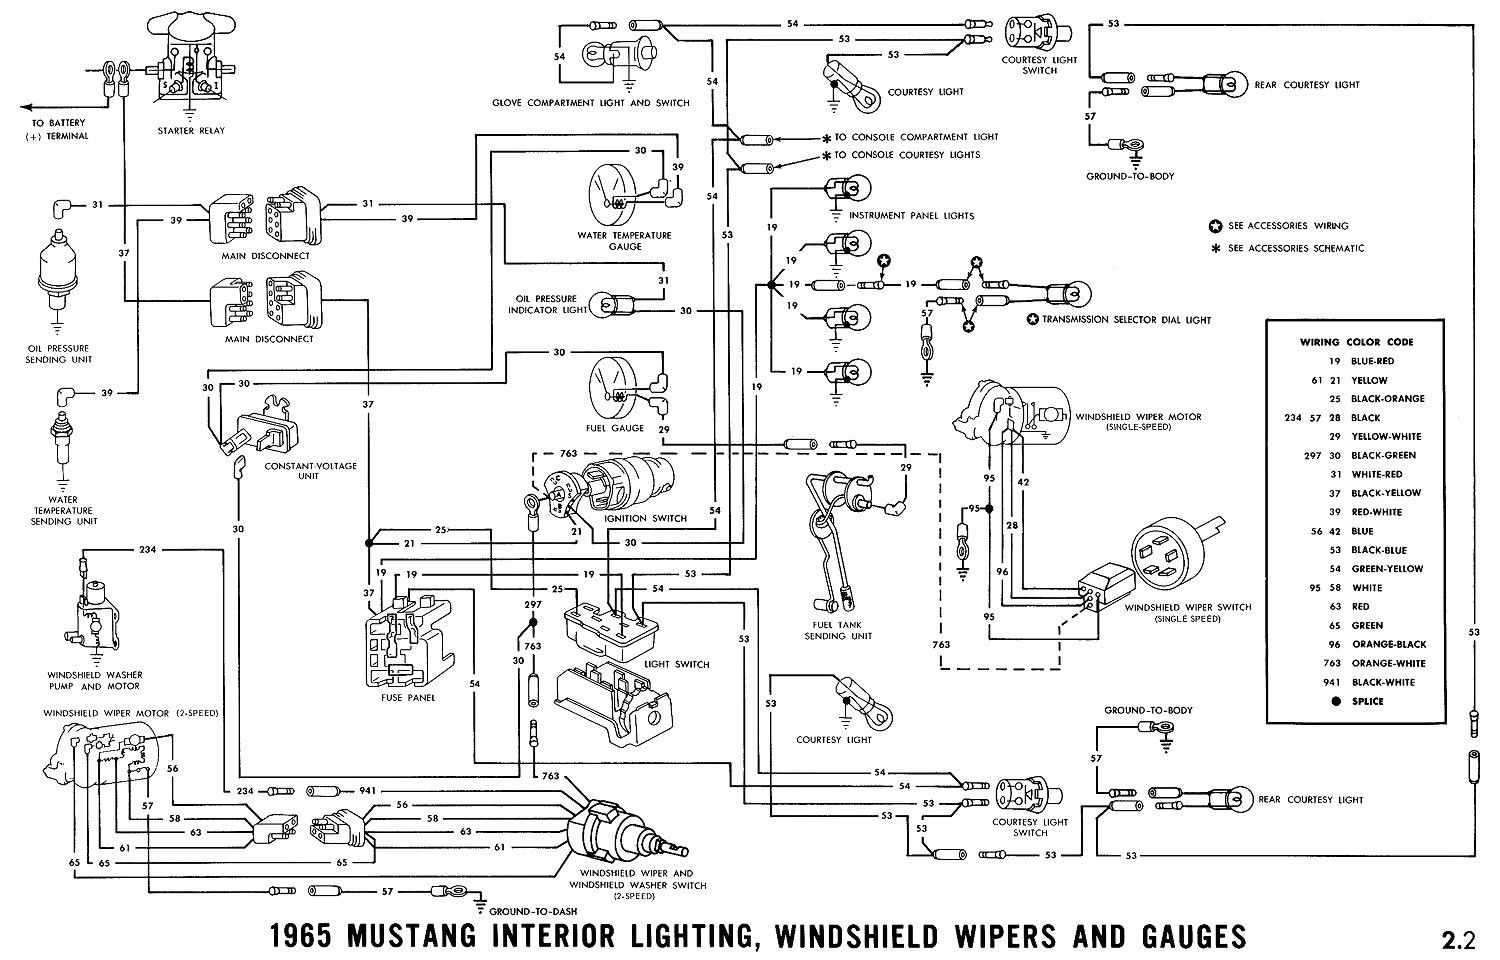 Awesome 1965 Mustang Ignition Switch Wiring Diagram Di 2020